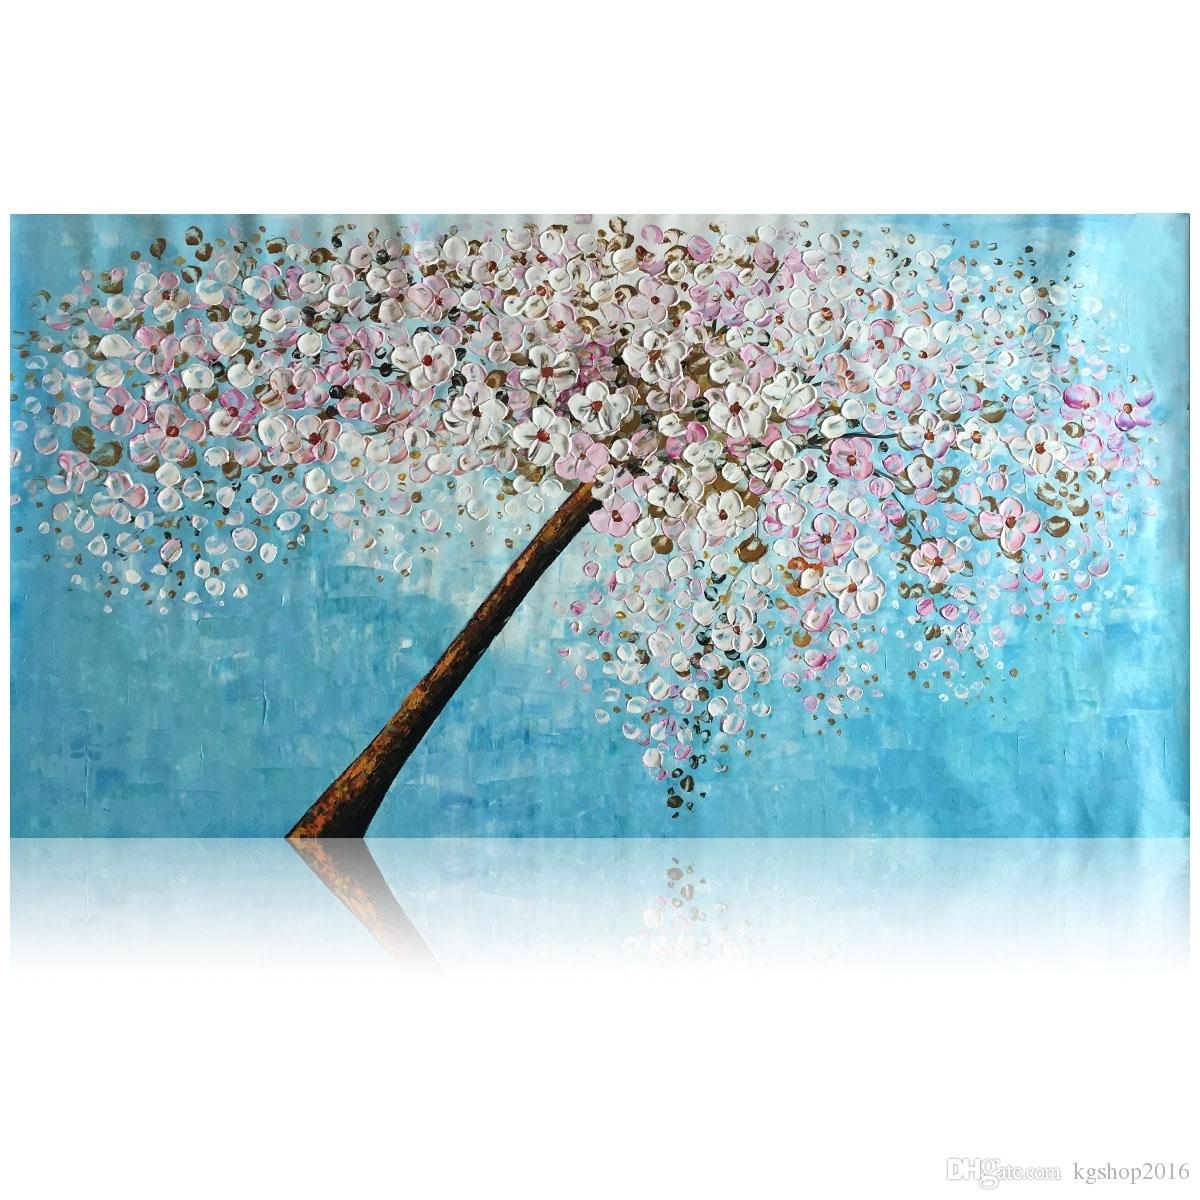 2018 Kgtech Thick Textured Acrylic Paintings 3D Floral Wall Art In Most Current Floral Wall Art (View 1 of 20)